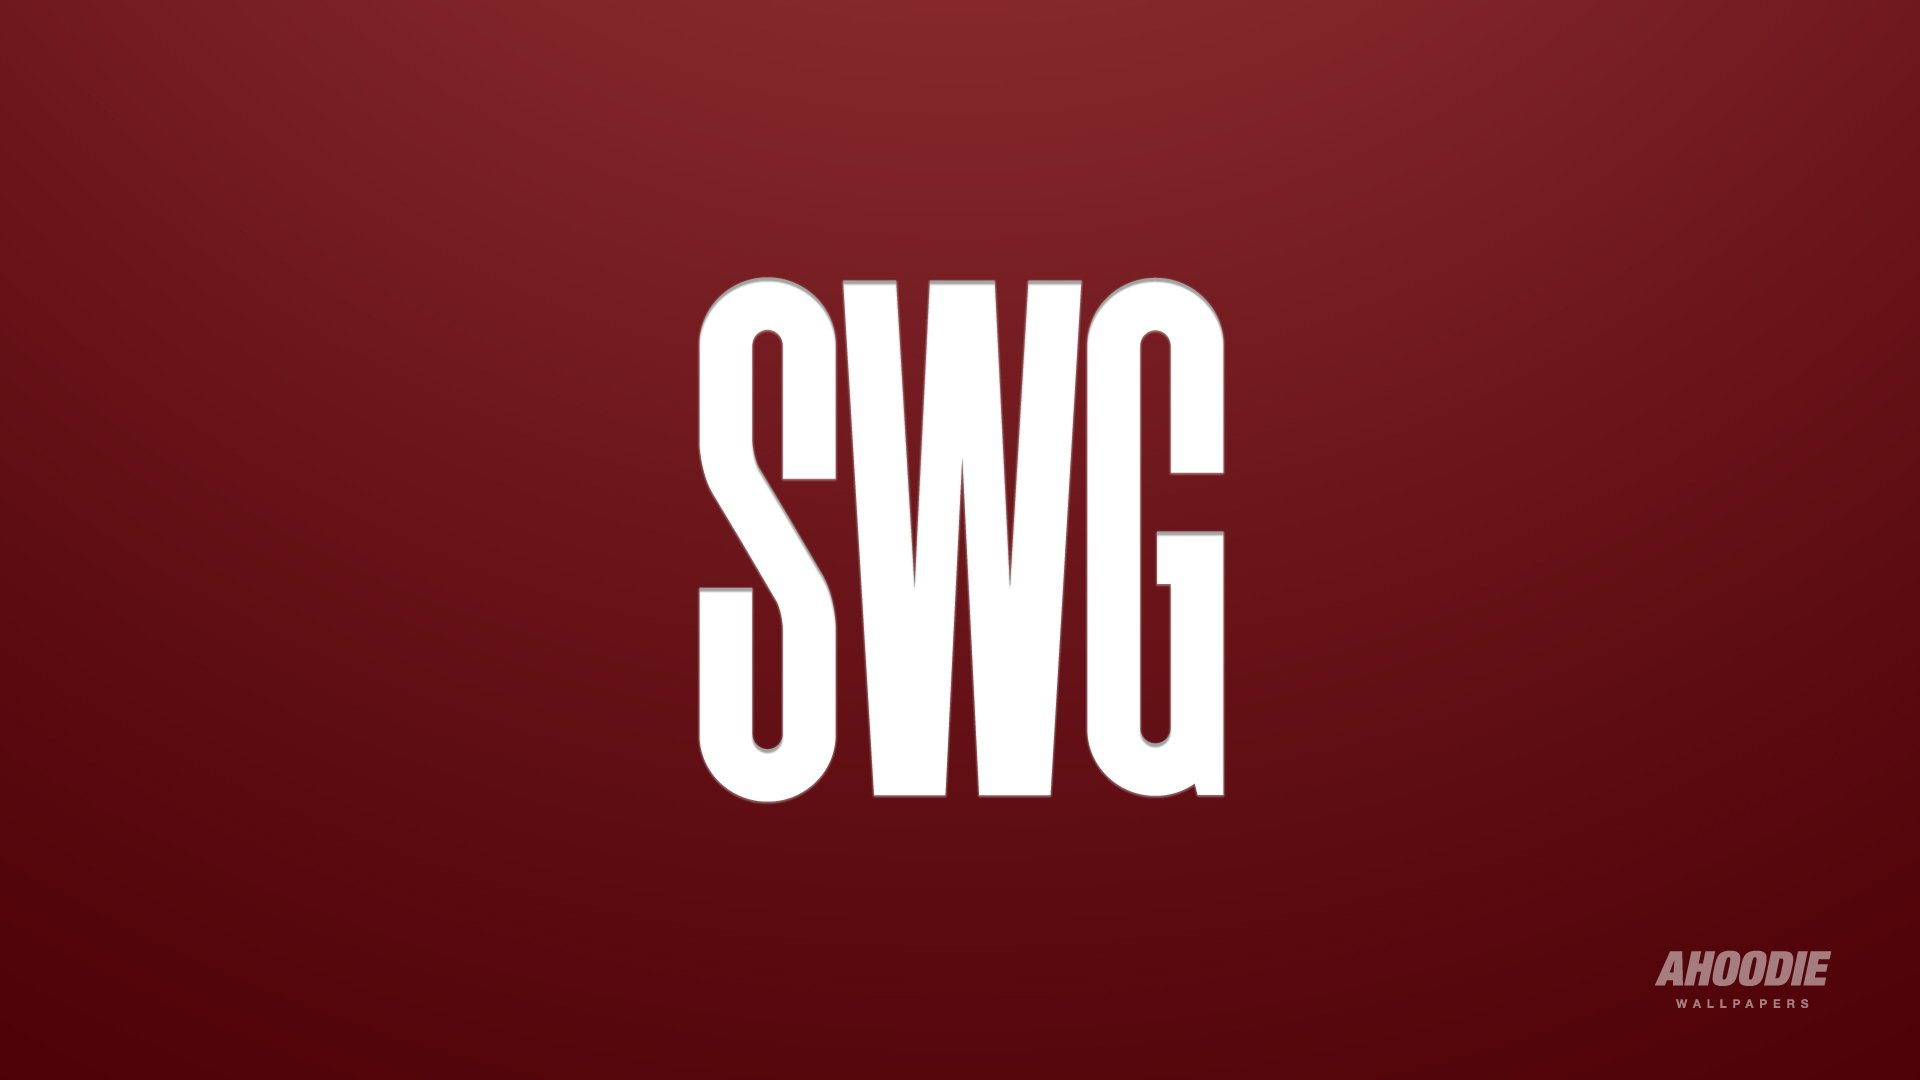 Swag HD Wallpaper | Background Image